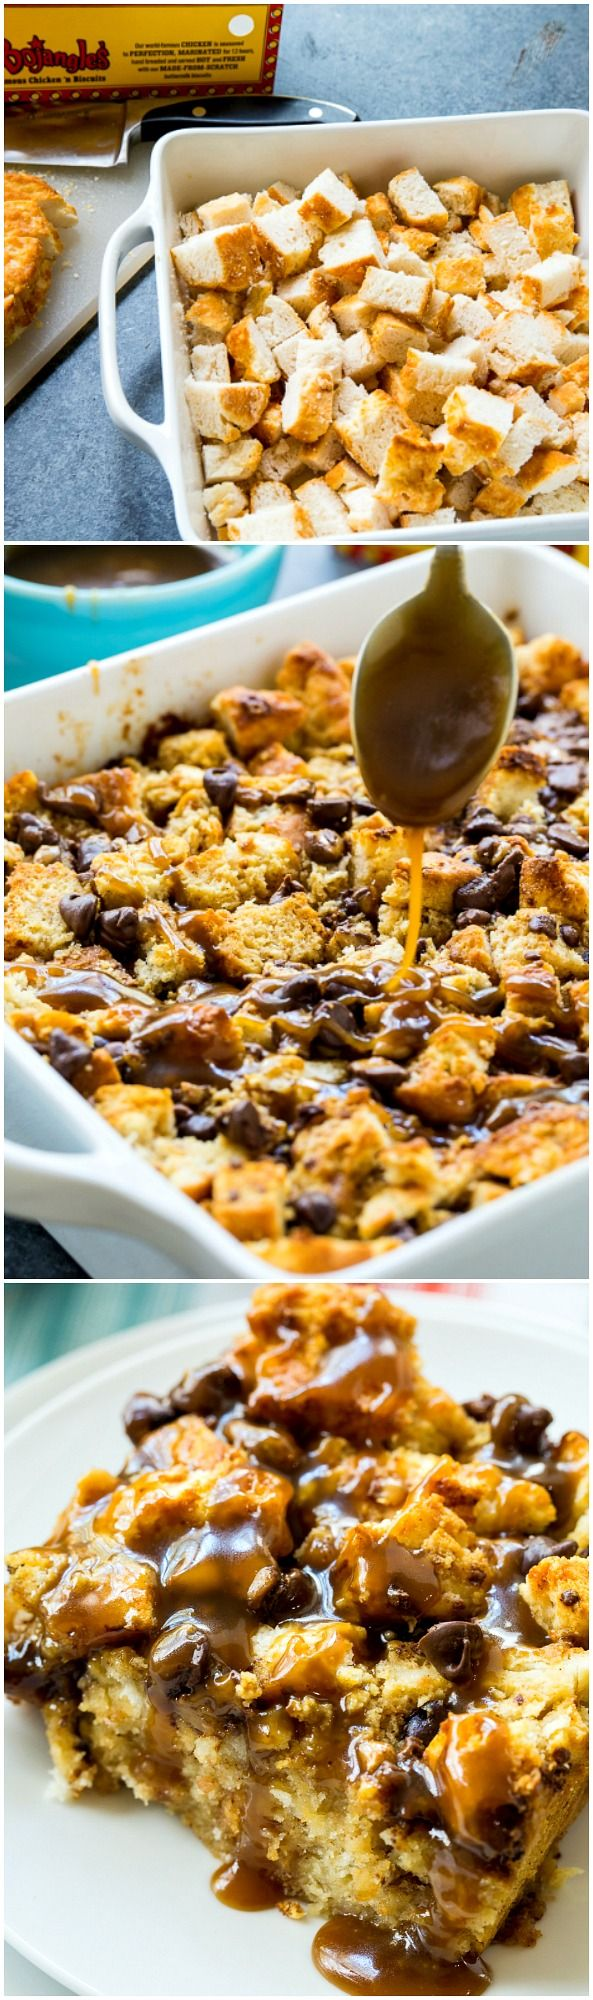 Turn leftover biscuits into this delicious Toffee Bread Pudding.